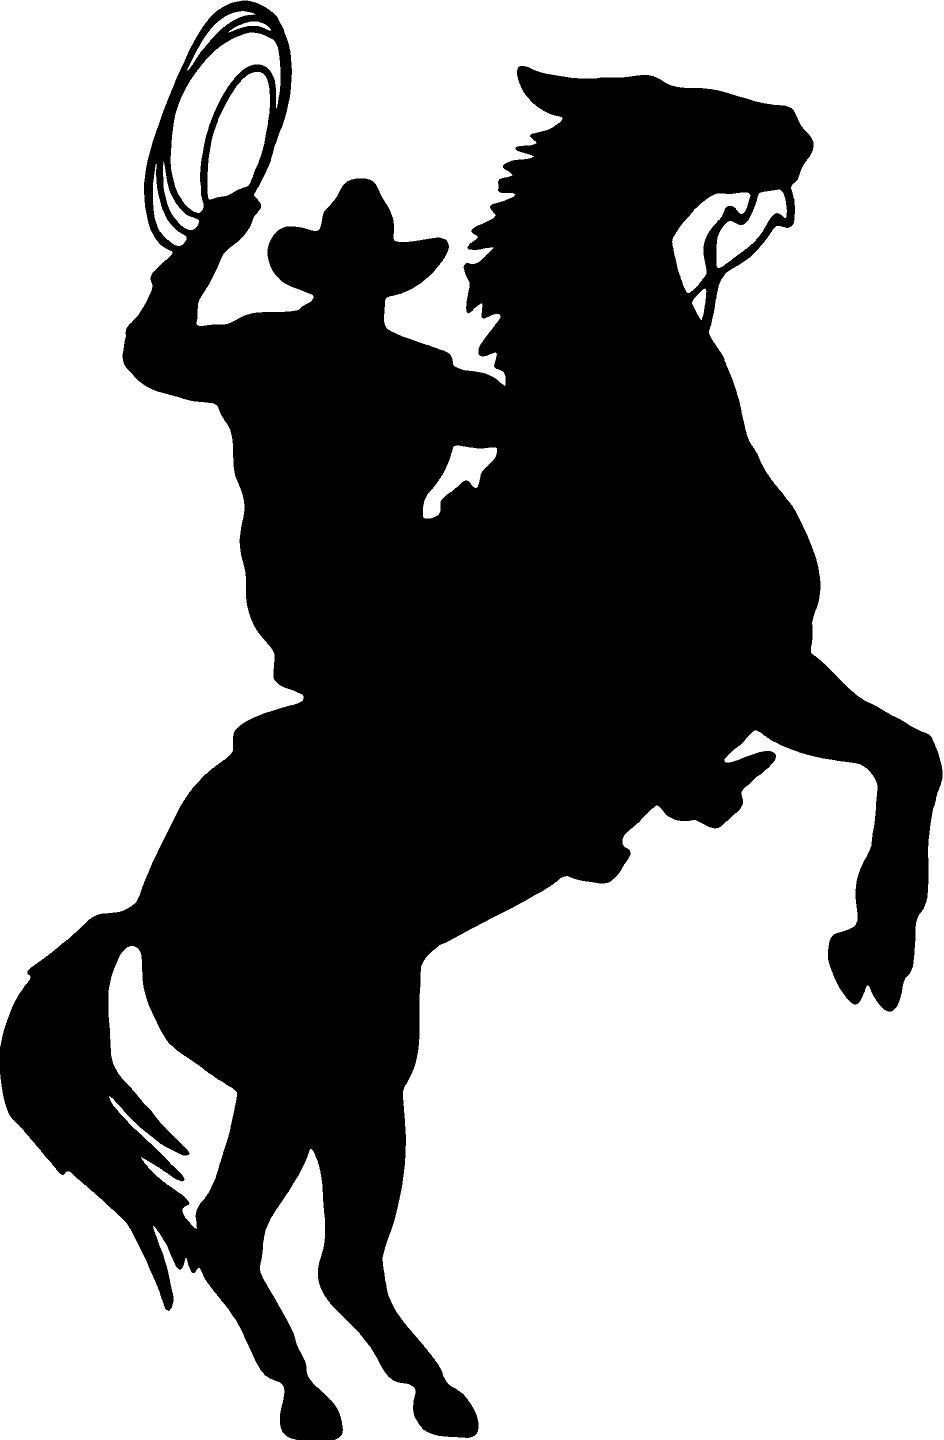 13 99 Cowboy Horse Rider Western Wall Decal Home Decor Silhouette Large 20 X 13 Ebay Home Garden Horse Silhouette Silhouette Art Cowboy Horse